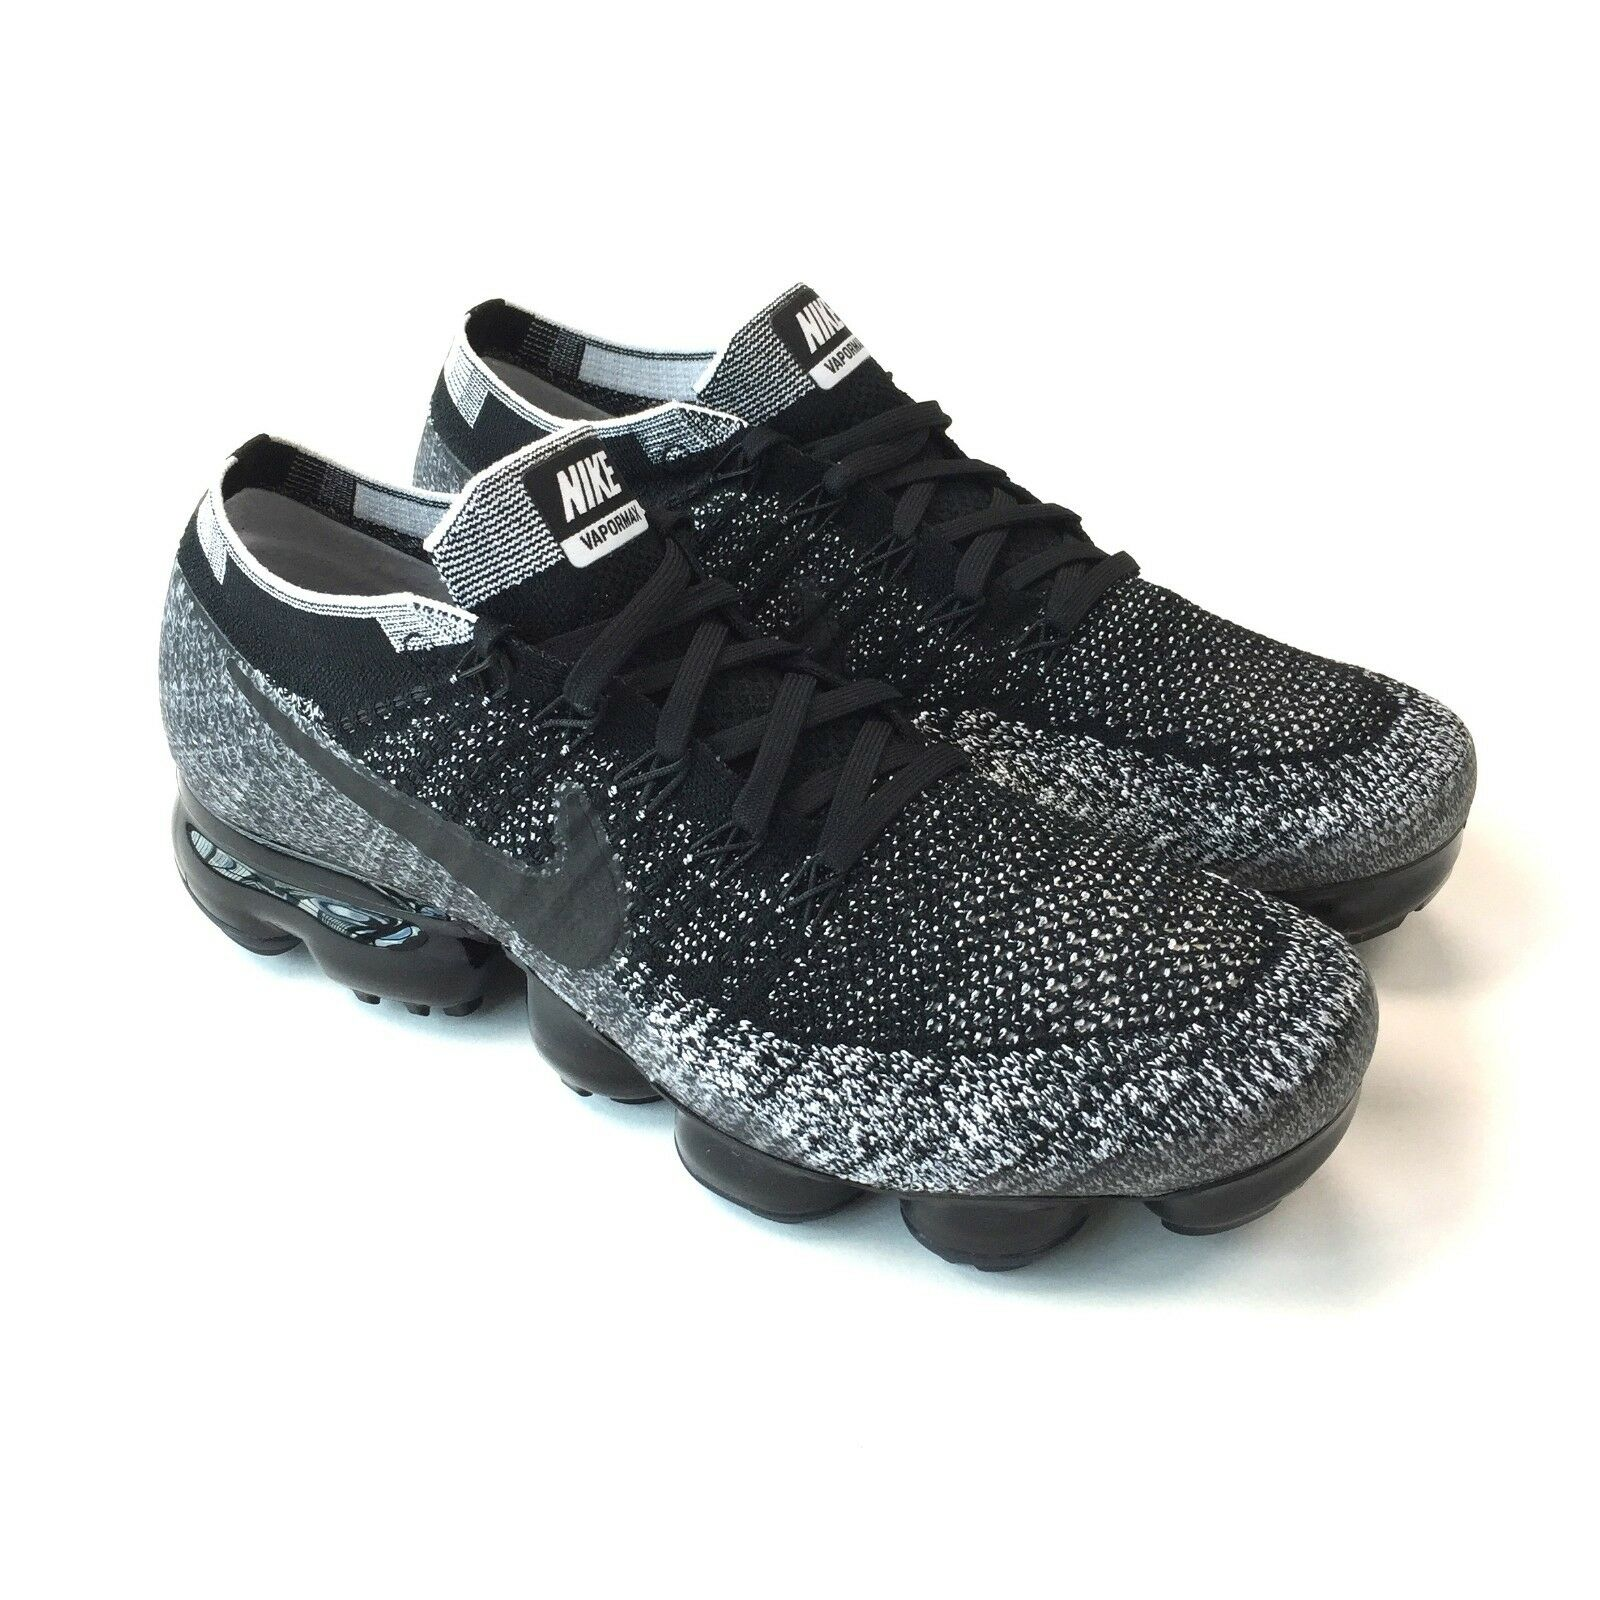 NWT Nike Men's Air Vapormax ID Flyknit NikeID Black White Oreo DS 12 AUTHENTIC